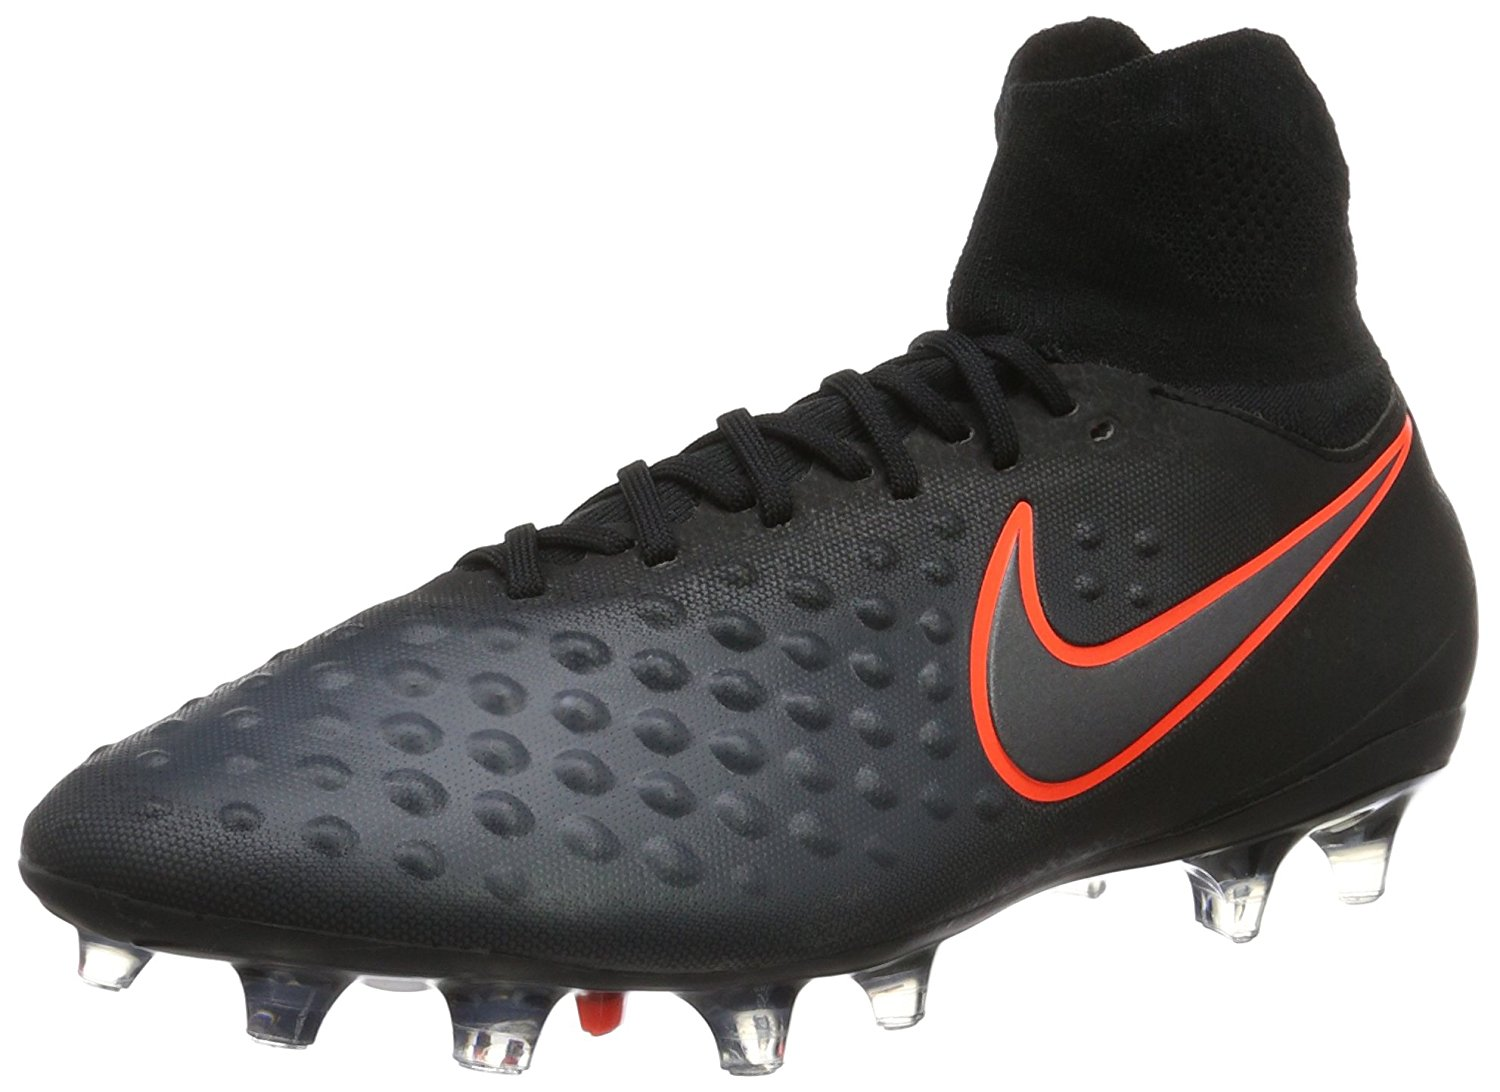 752af5b1eb69 Buy Nike Mens Magista Orden II Fg Soccer Cleat in Cheap Price on ...